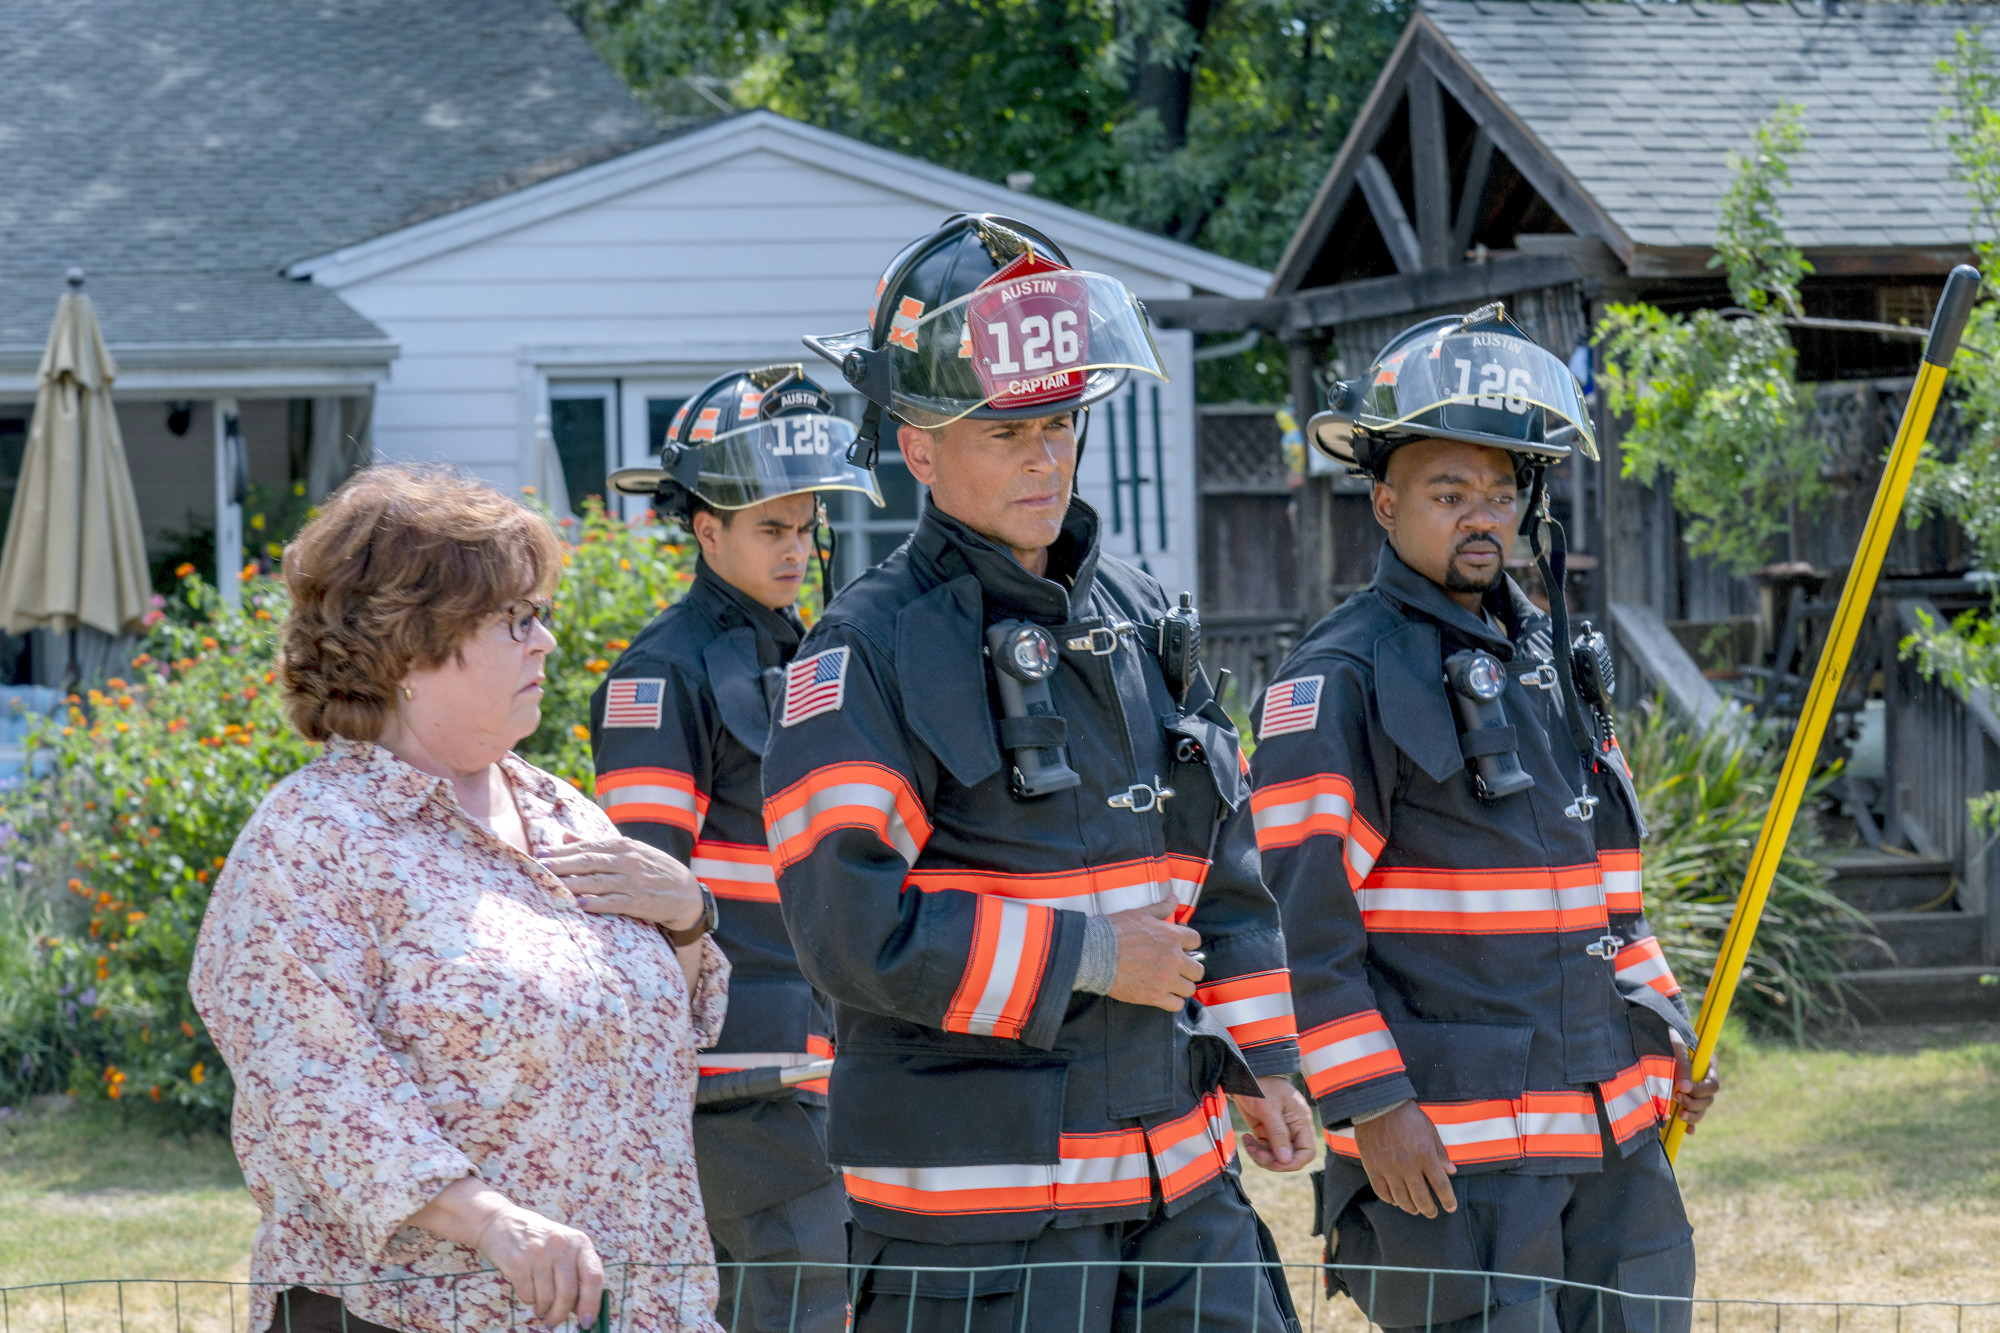 """9-1-1: LONE STAR: L-R: Guest star Patrika Darbo, Julian Works, Rob Lowe and Brian Michael Smith in the """"Yee-Haw"""" episode of 9-1-1: LONE STAR airing Monday, Jan. 20 (8:00-9:01 PM ET/PT) on FOX. ©2020 Fox Media LLC. CR: Jack Zeman/FOX."""